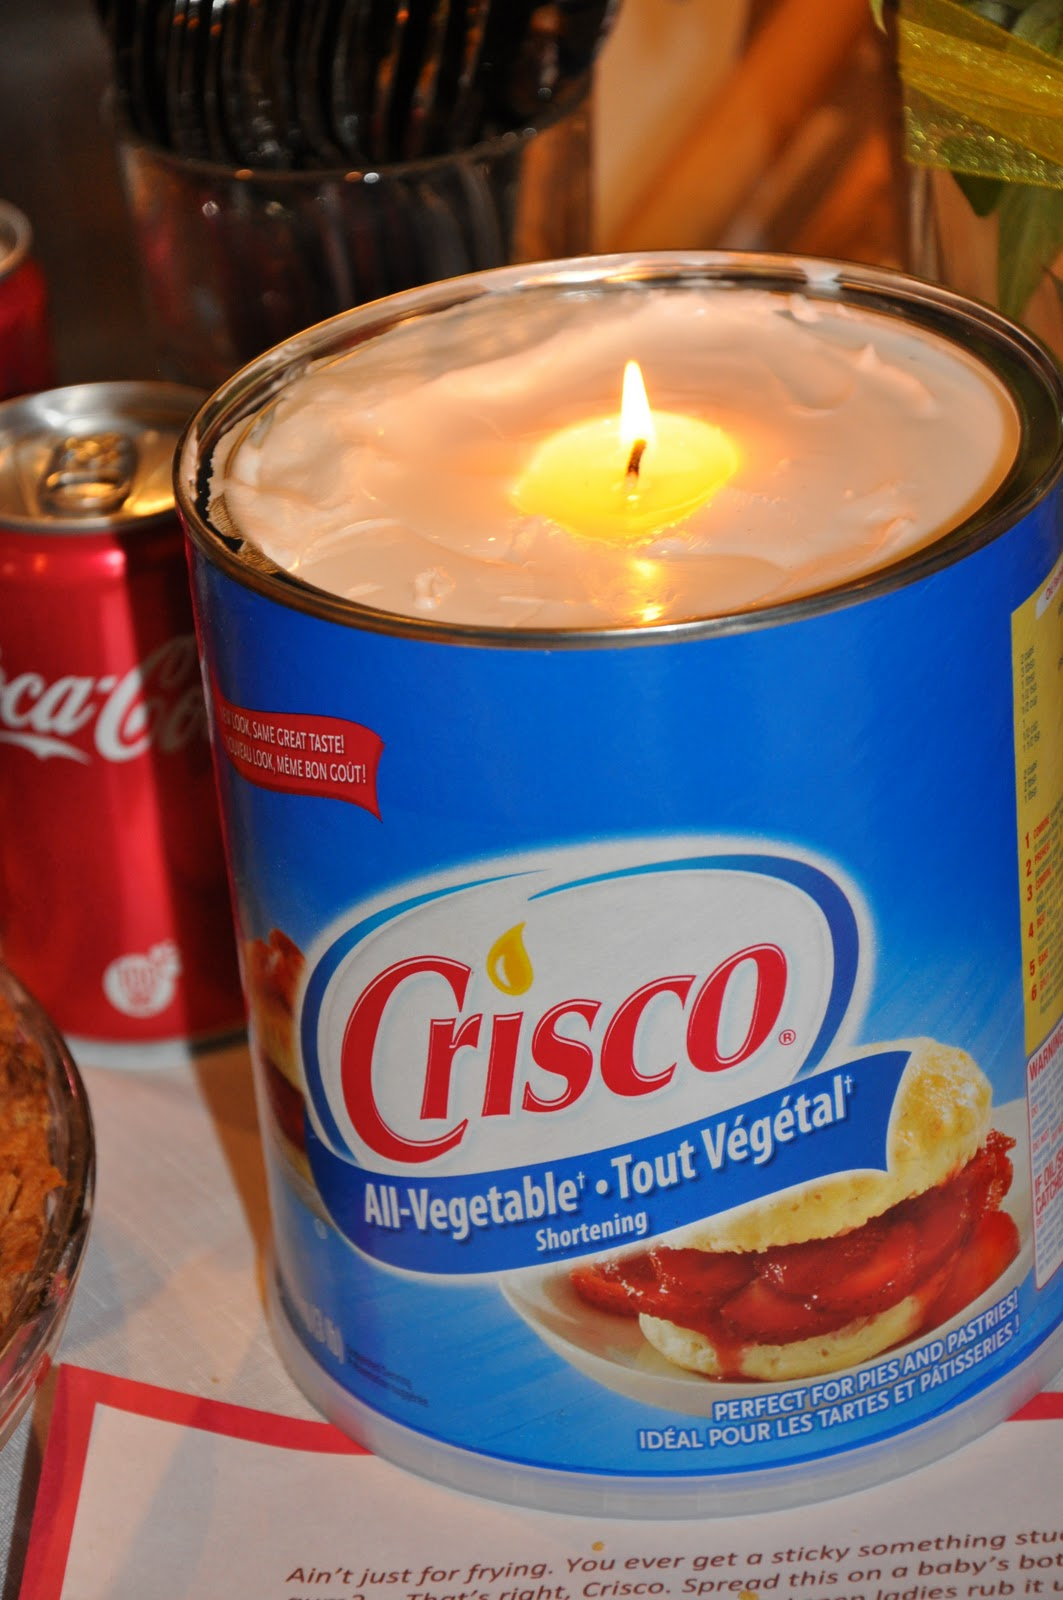 Crisco Candle for emergency situations. Simply put a piece of string in a tub of